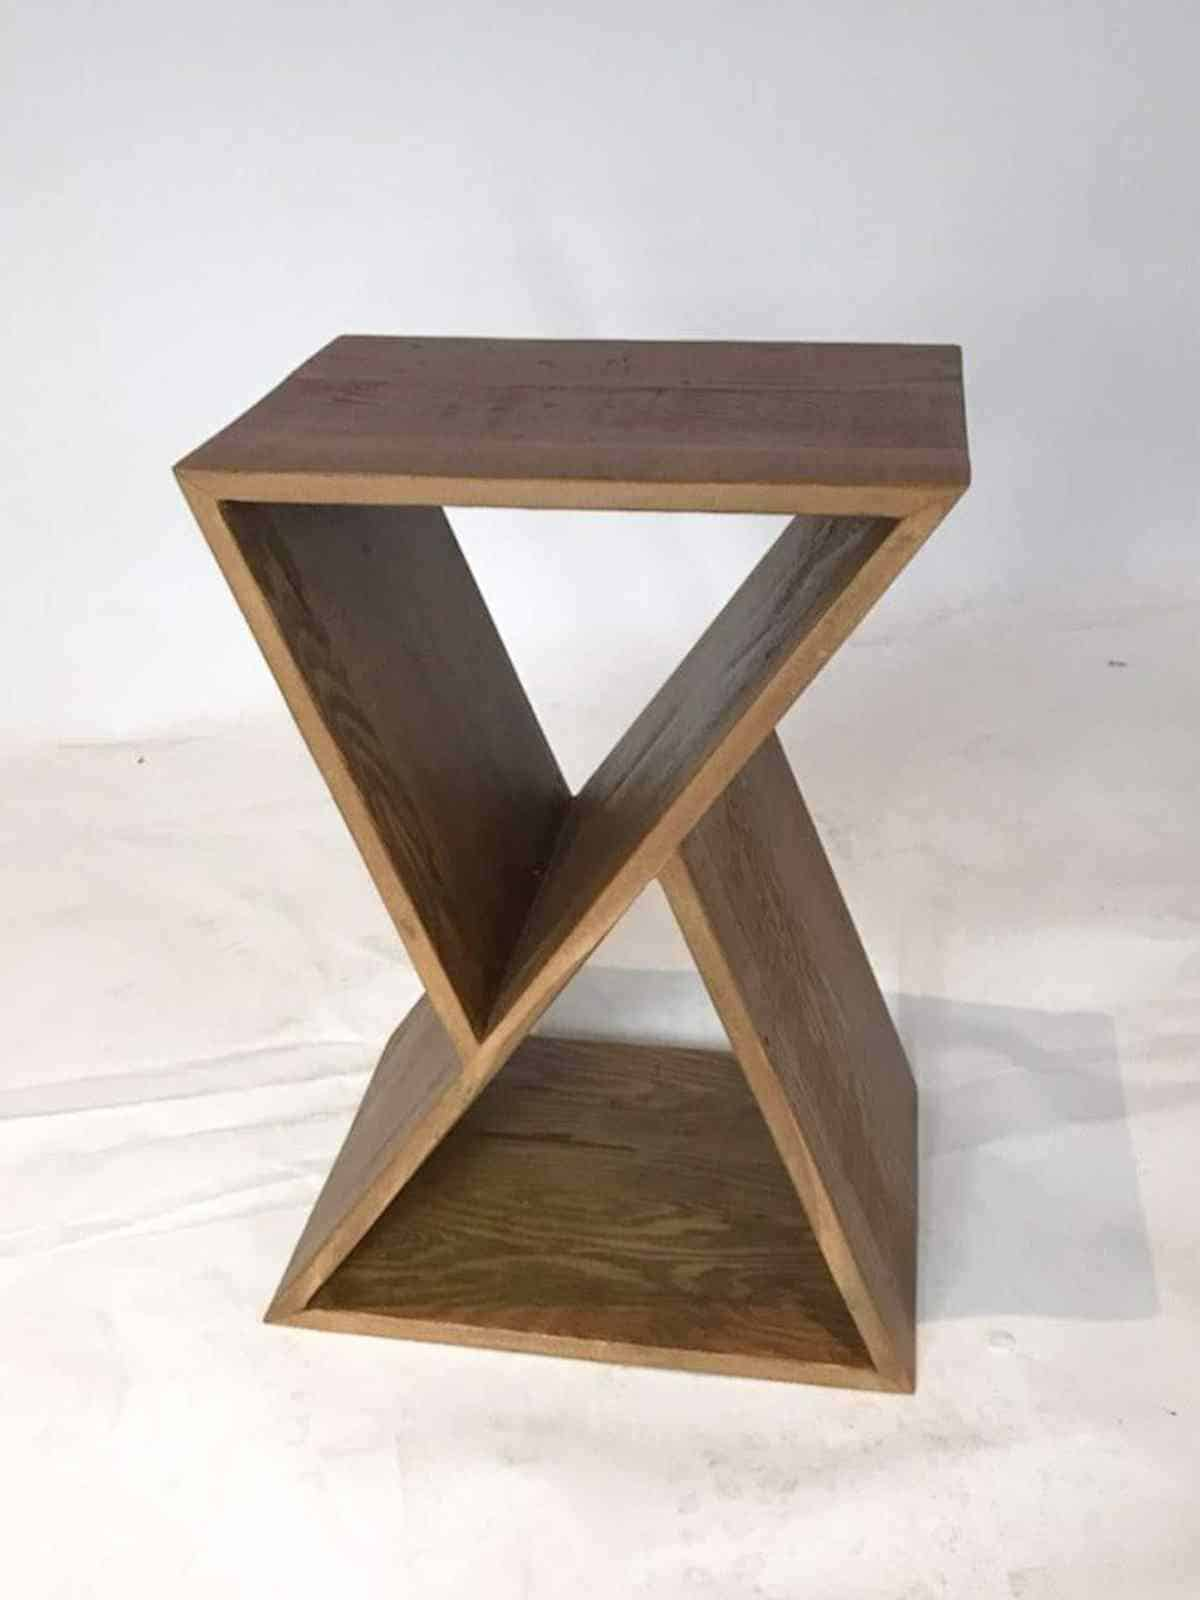 Shopping for Sustainable Furniture? Here's our list of the most eco friendly brands creating artisan show-pieces for any home… Image by Urban Woods #sustainablefurniture #ecofriendlyfurniture